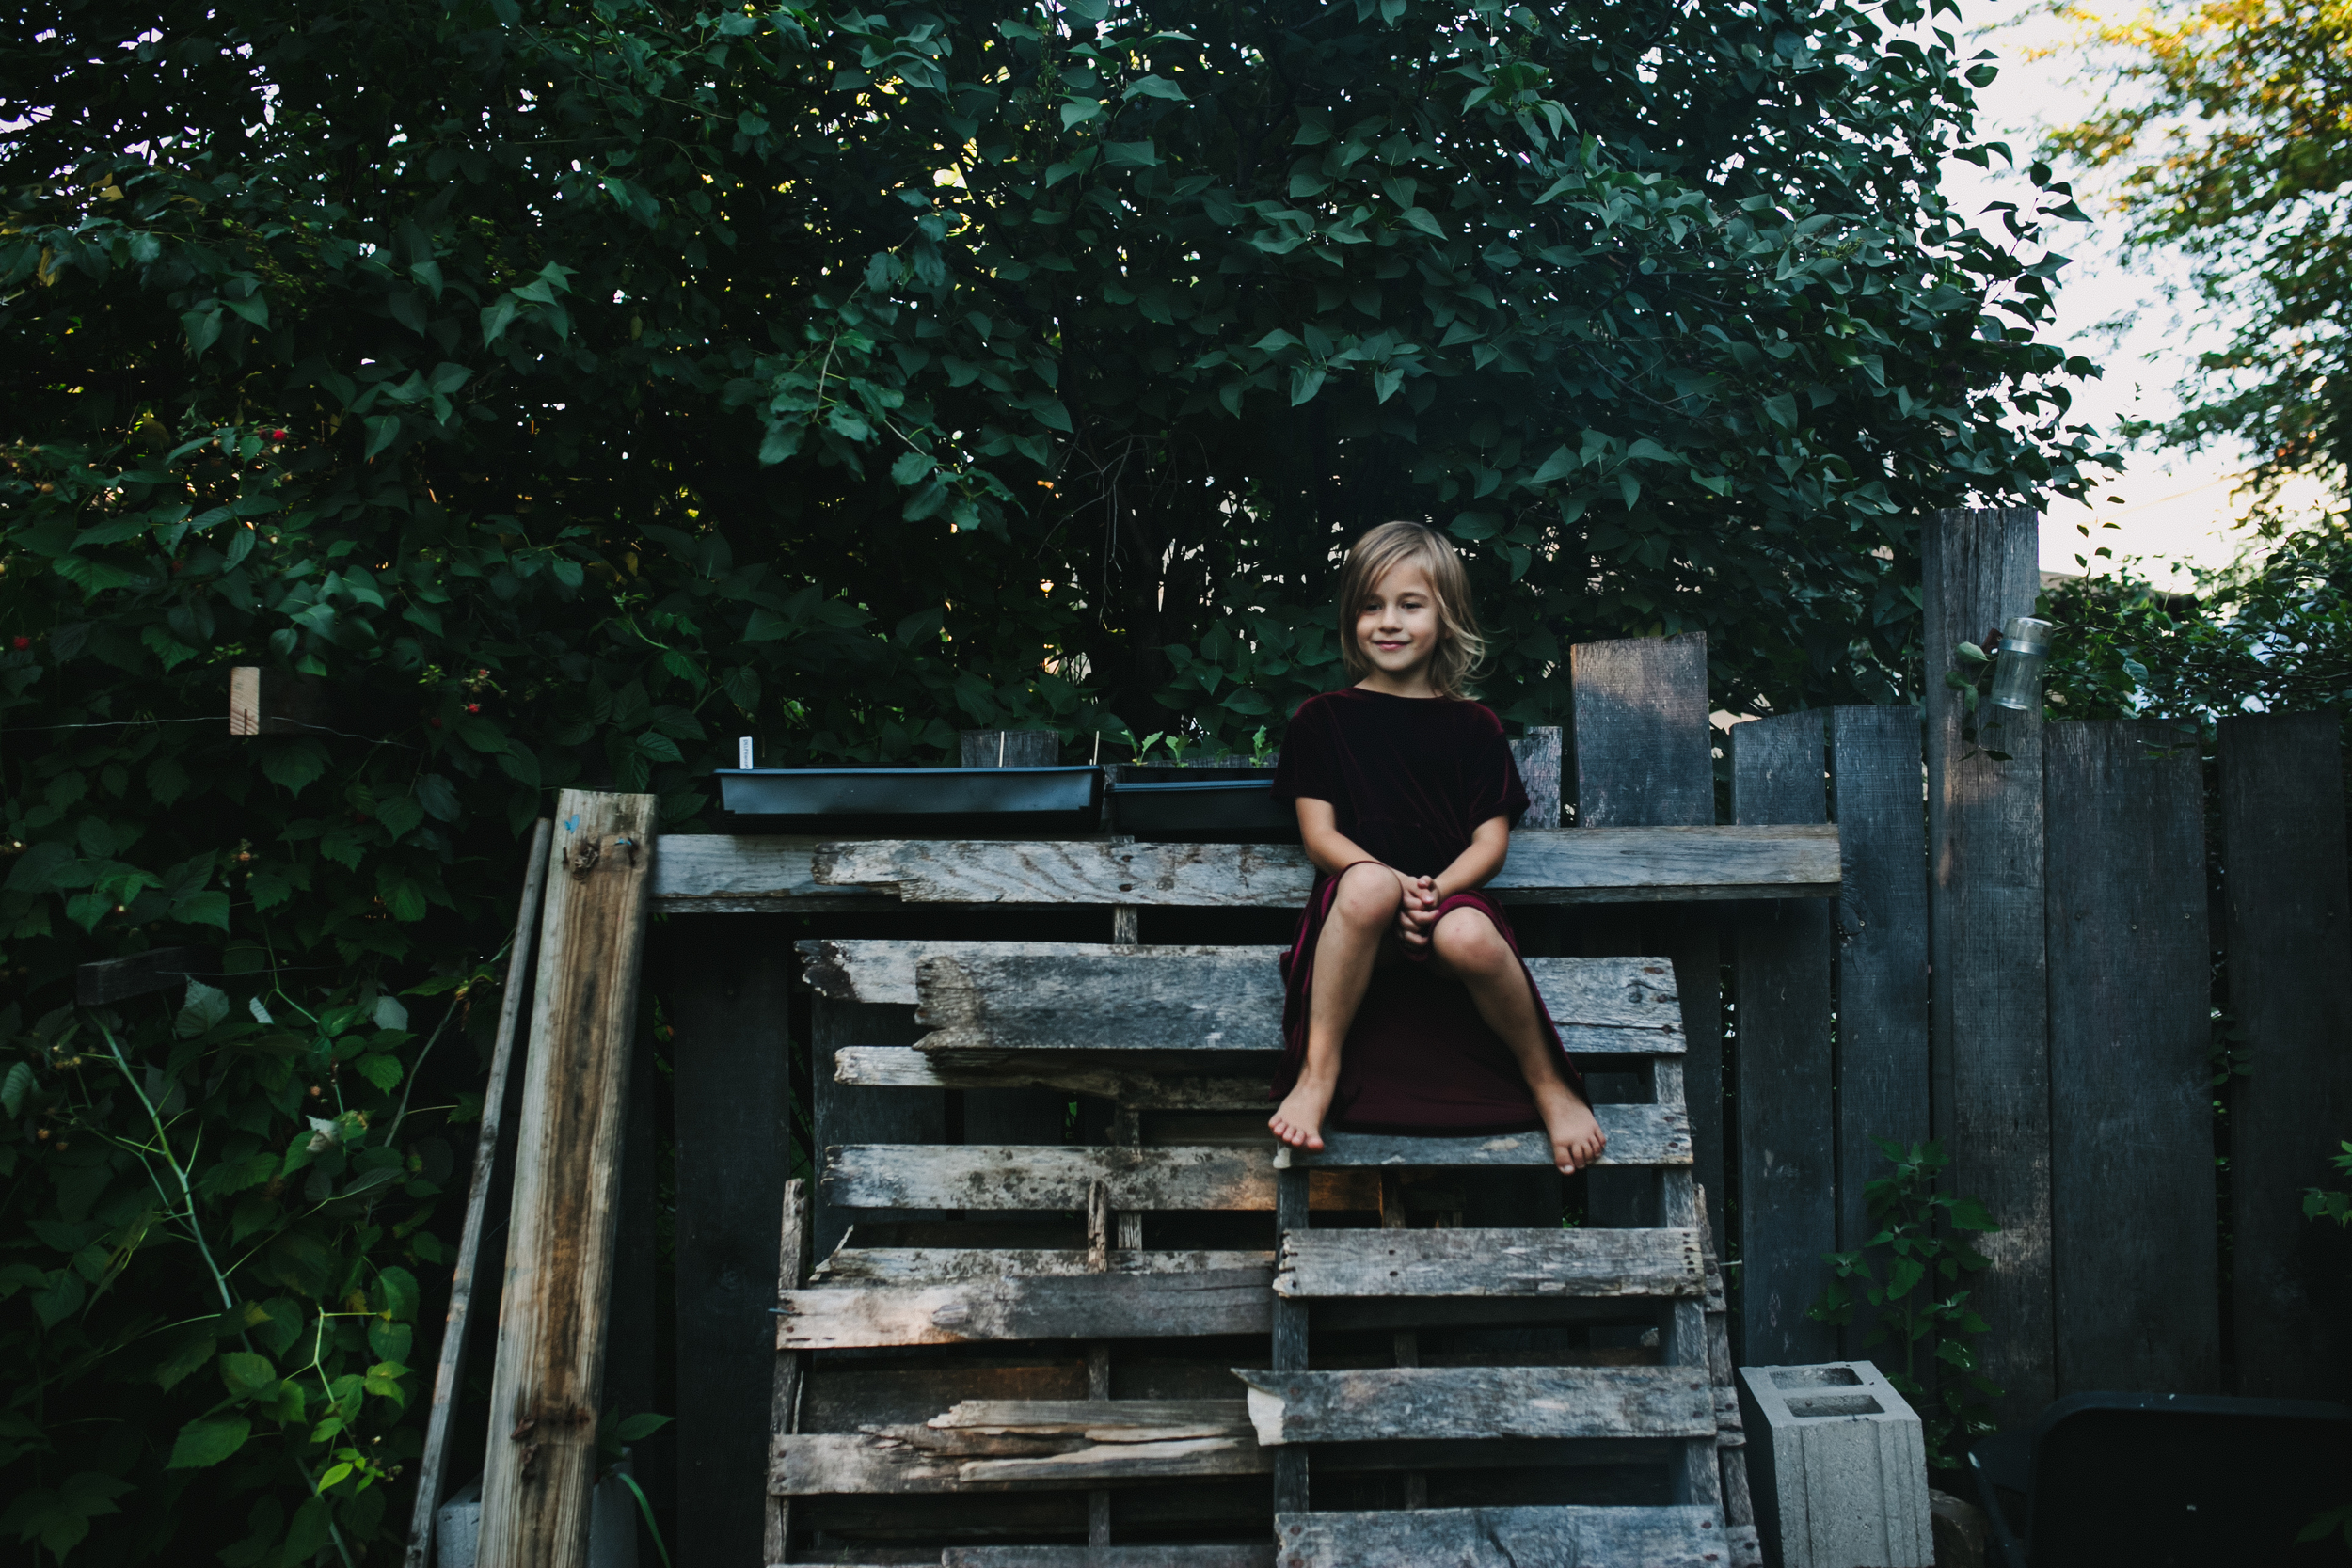 image from family documentary session of a girl sitting on the top of wooden pallets